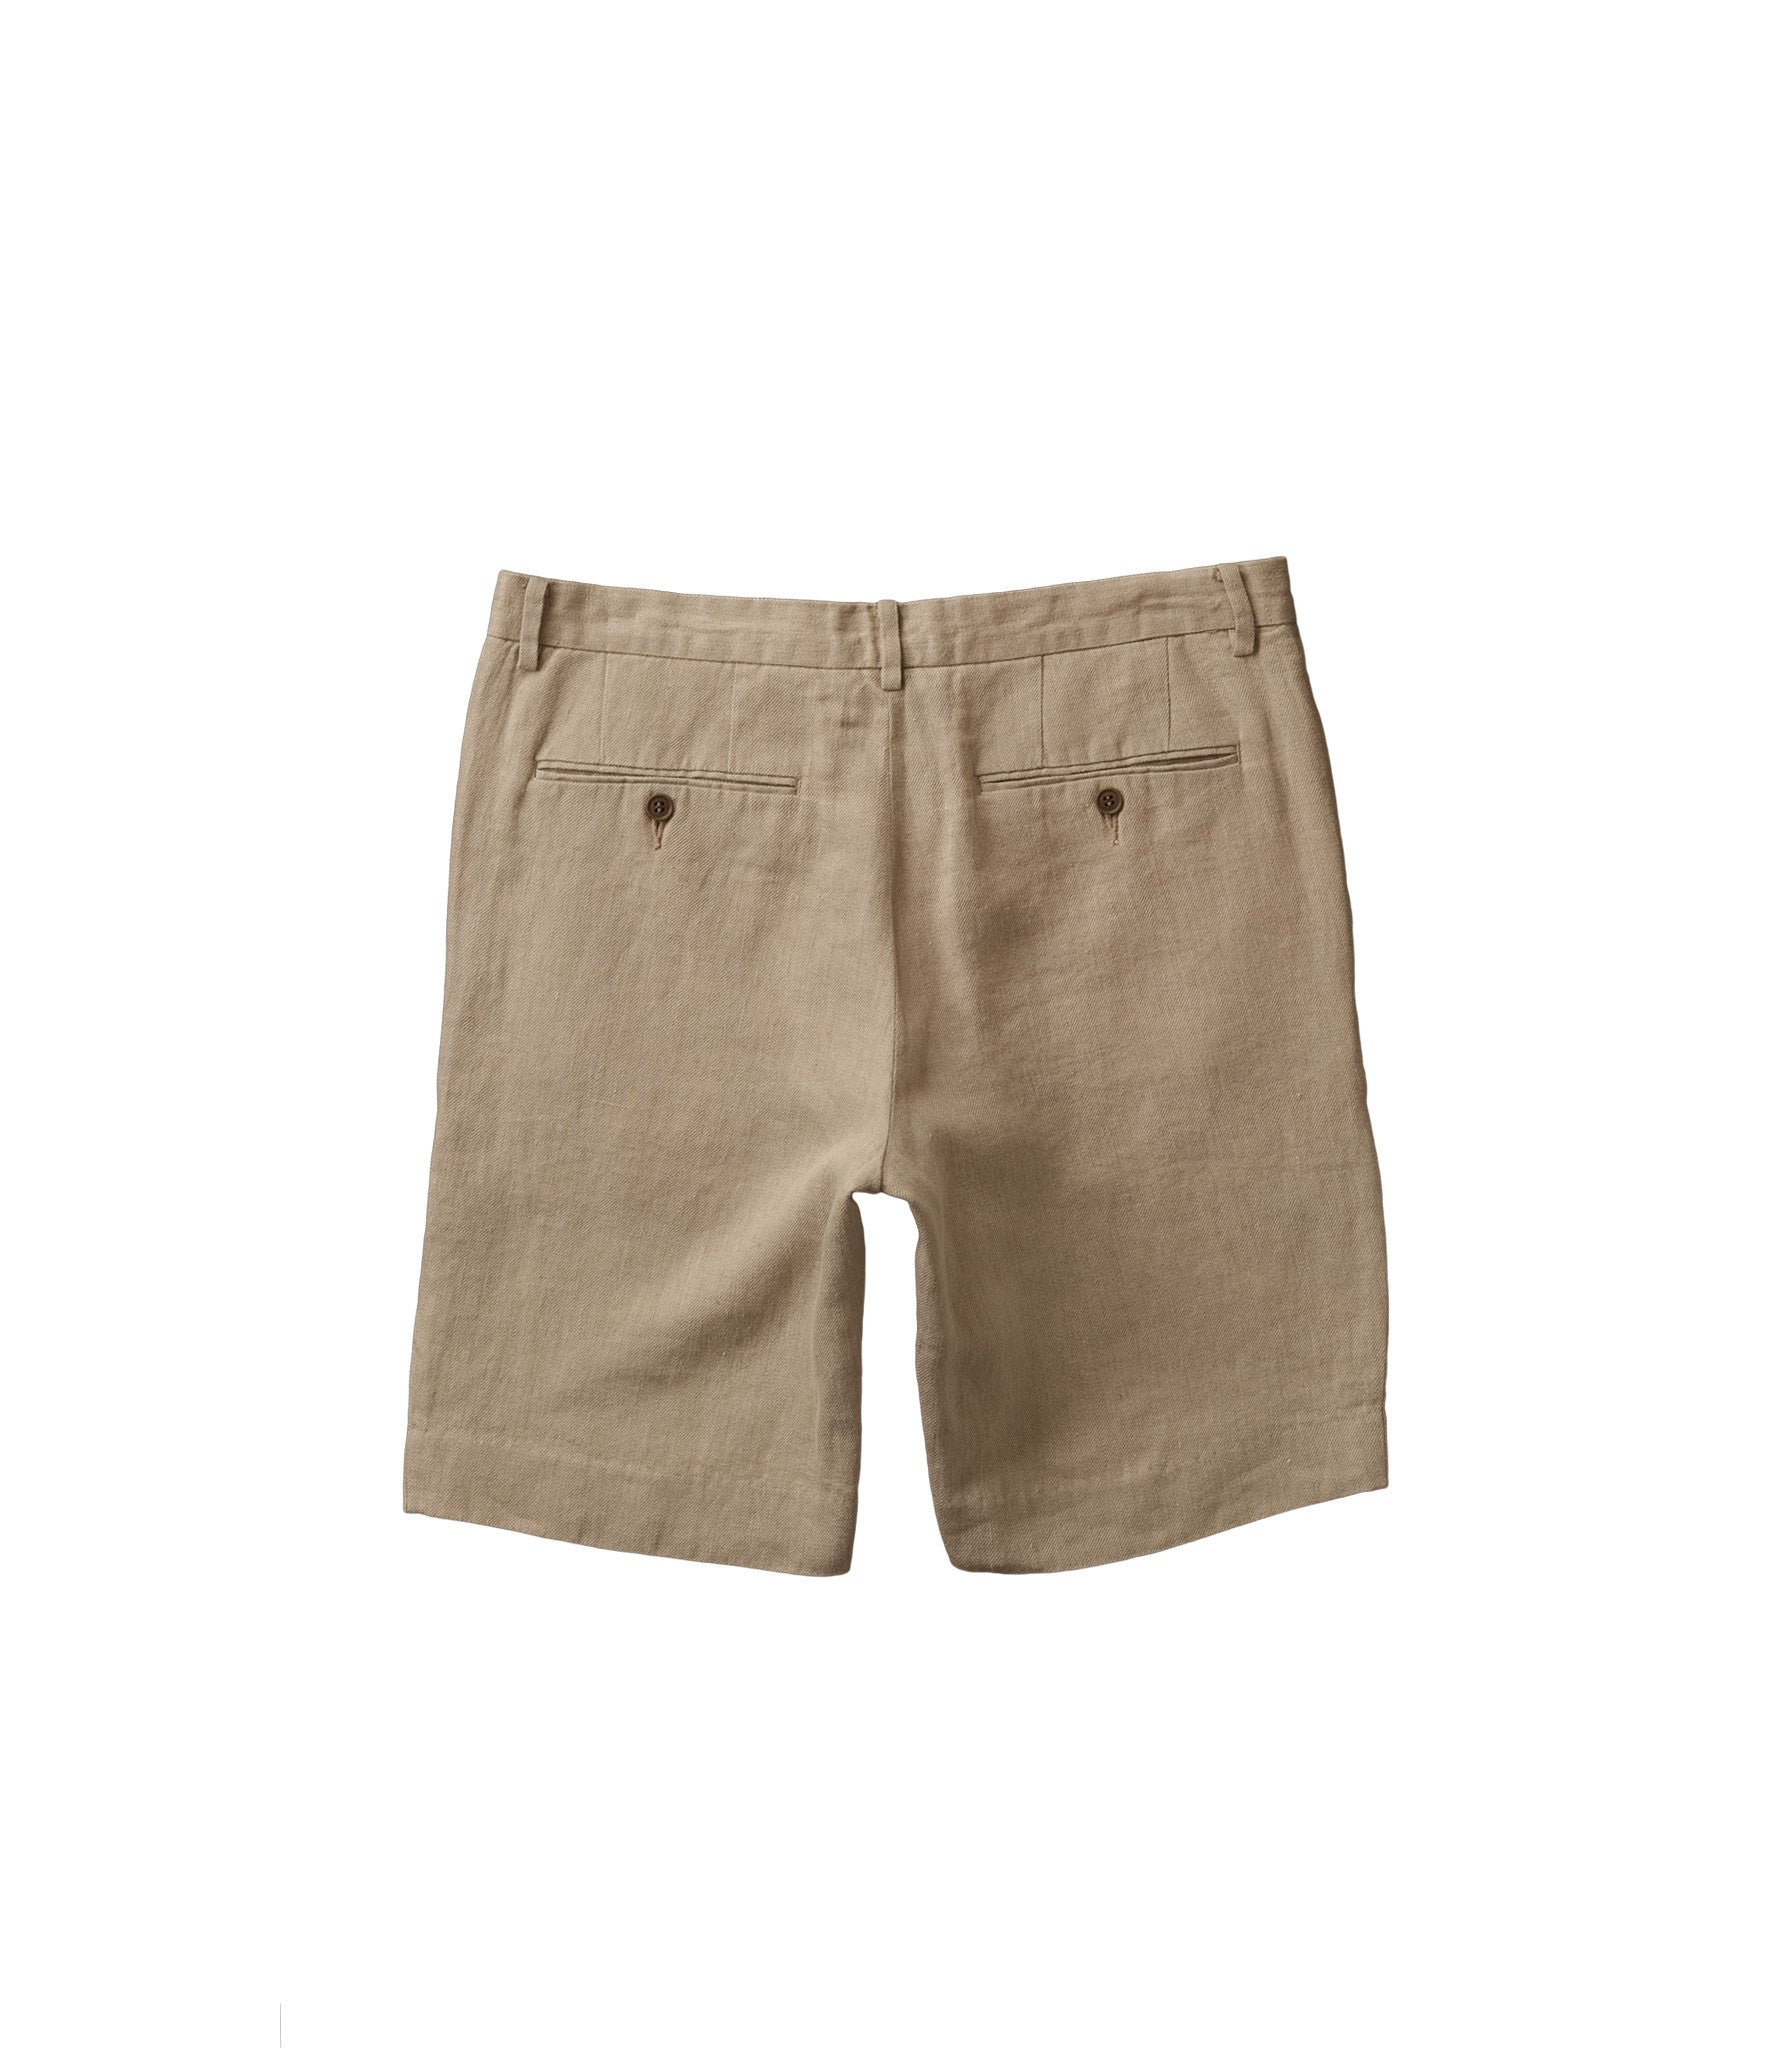 Linen shorts in Natural